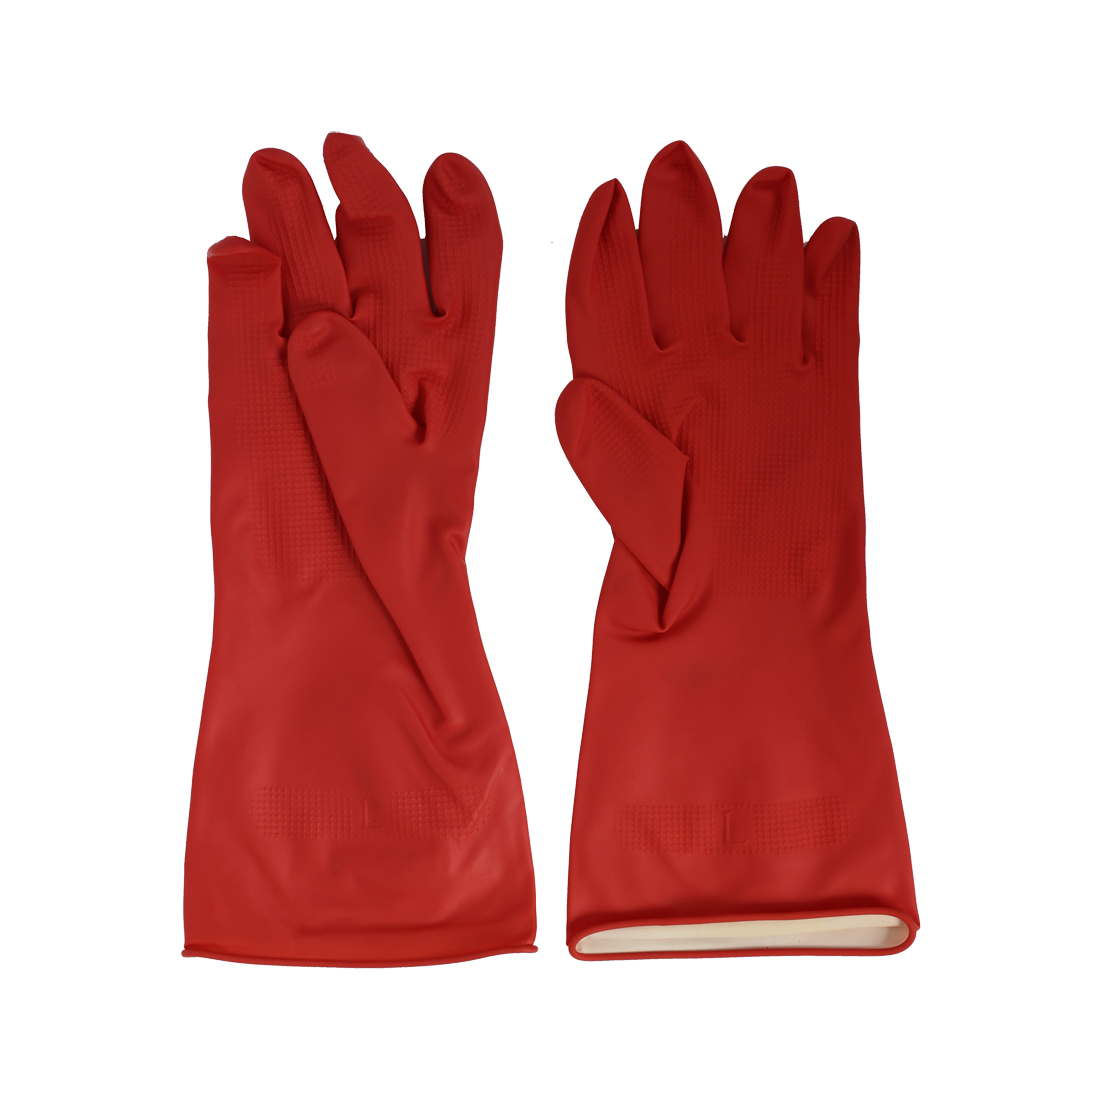 Industry Oil Resistant Waterproof Hand Protector Rubber Coated Gloves Red Pair